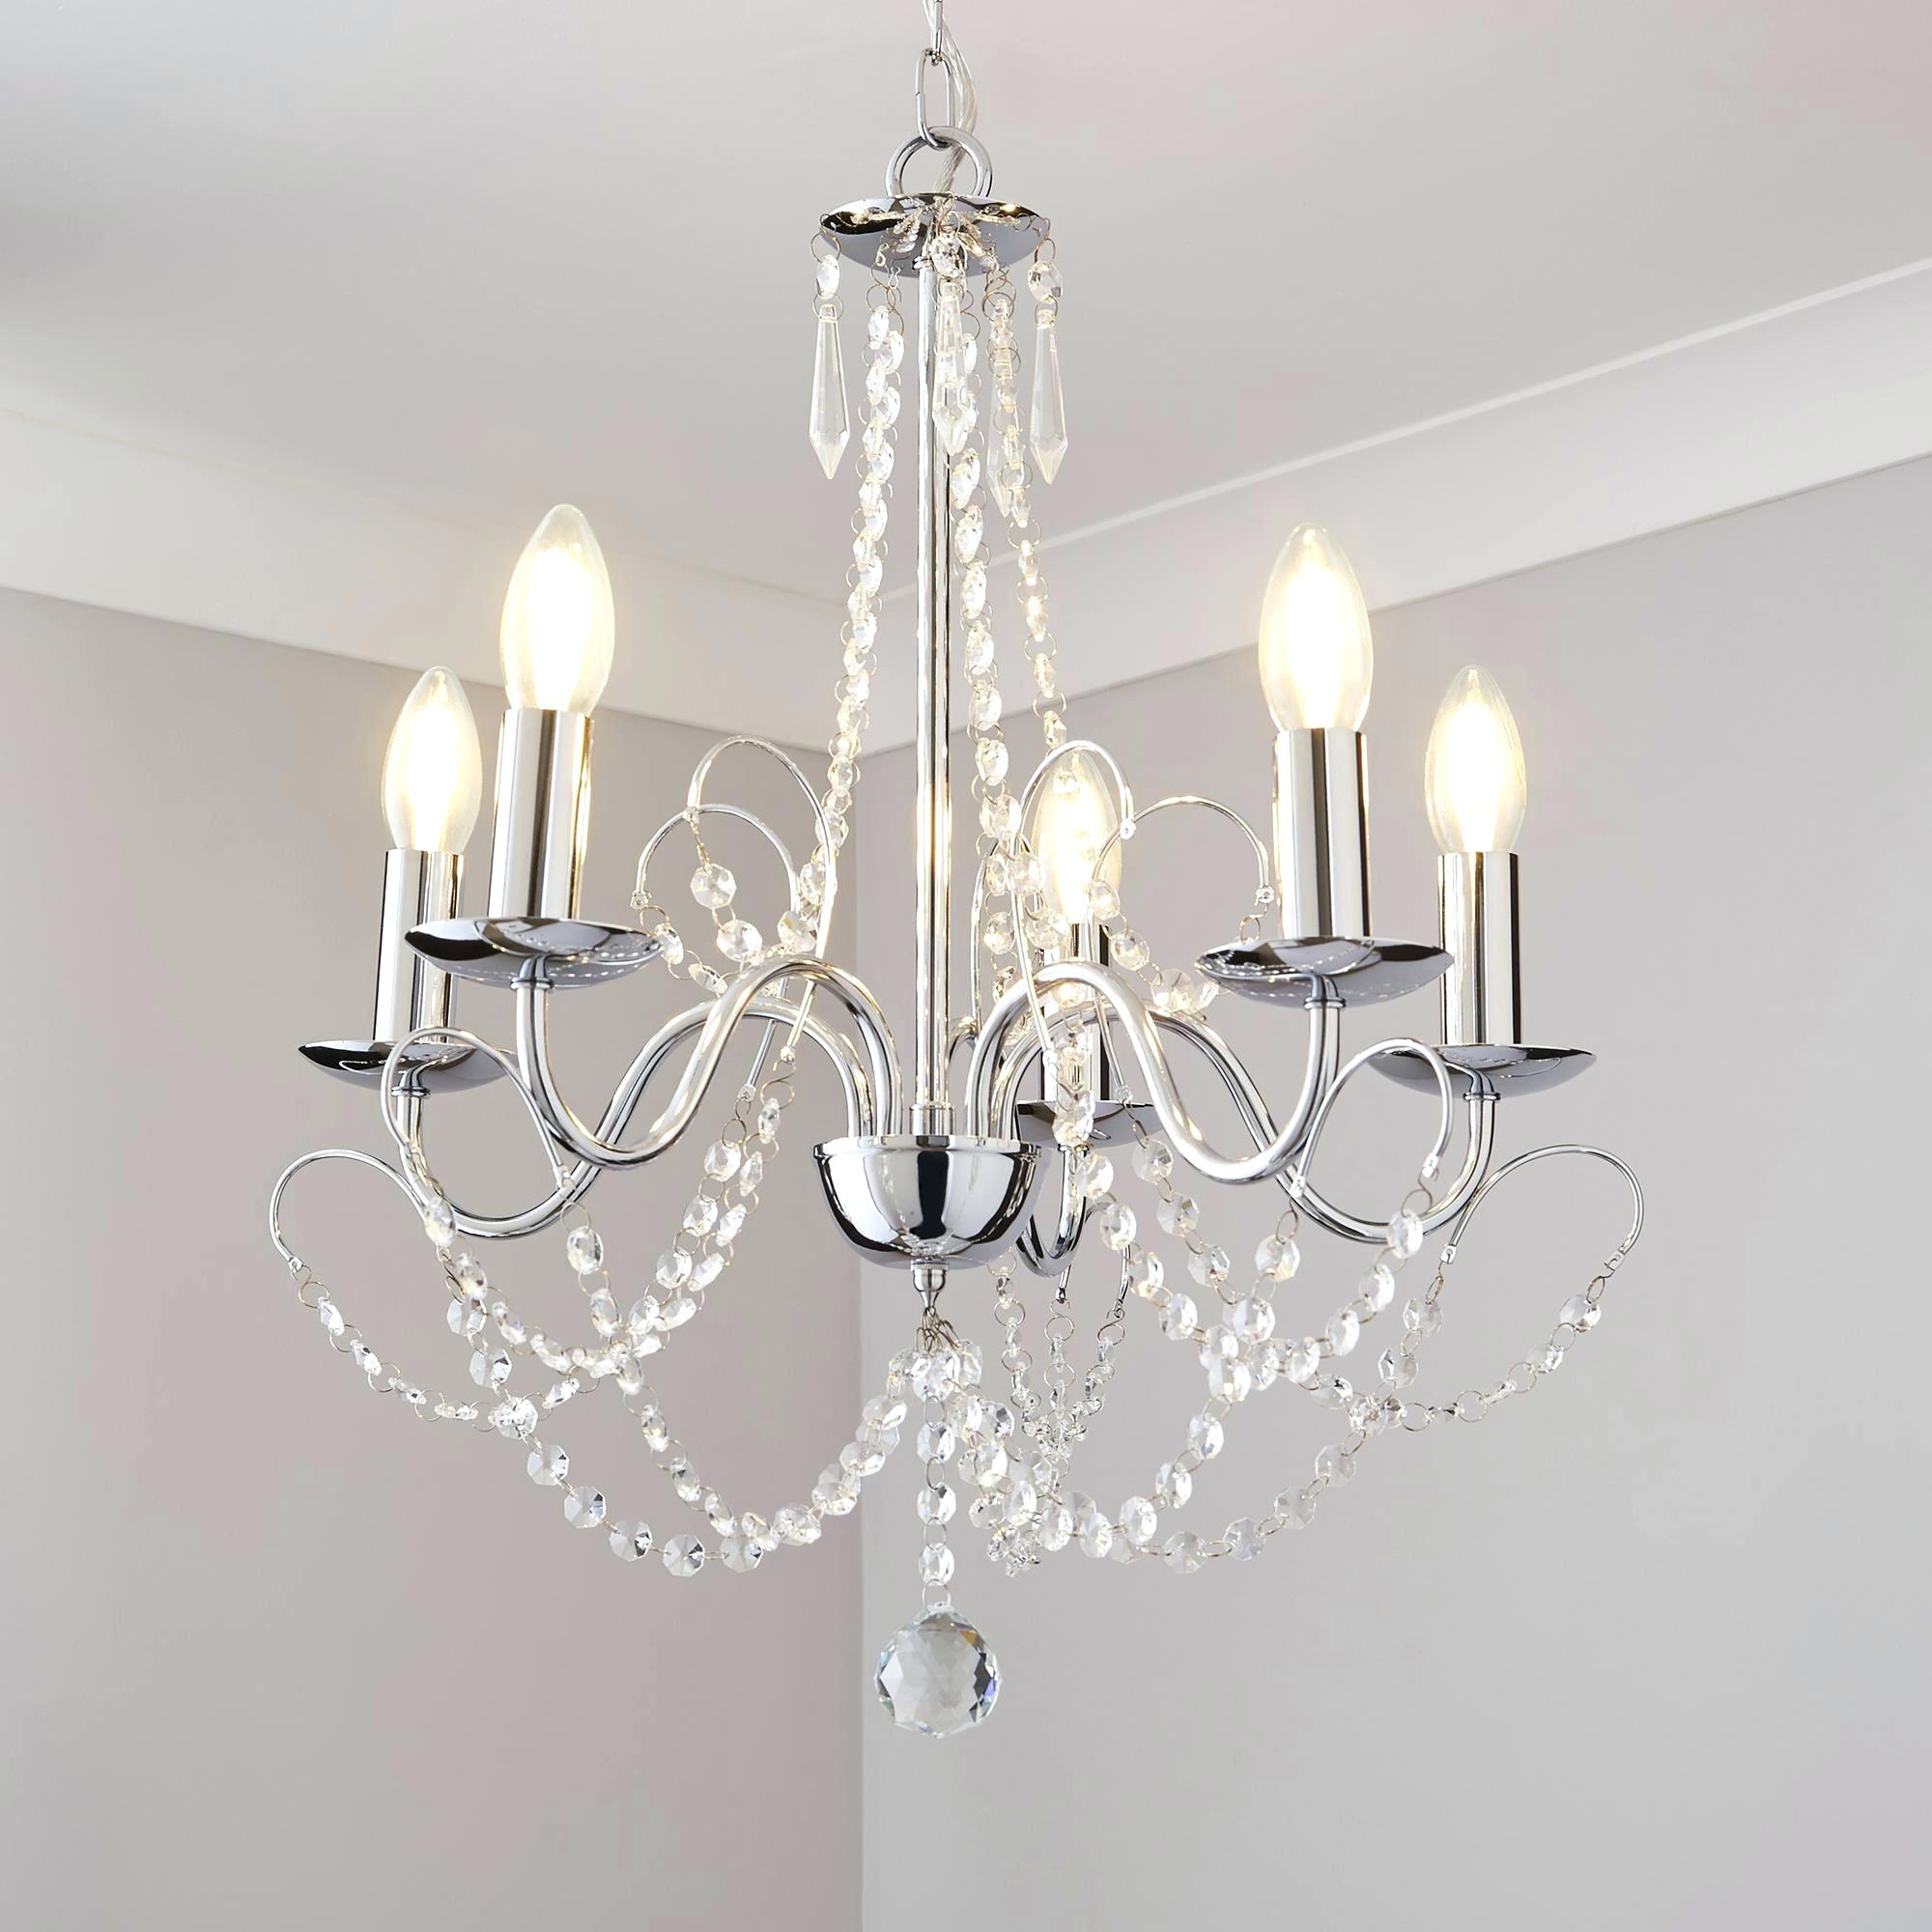 Fashionable Corneau 5 Light Chandeliers Regarding 5 Light Chandelier – Francenegaal (View 7 of 25)